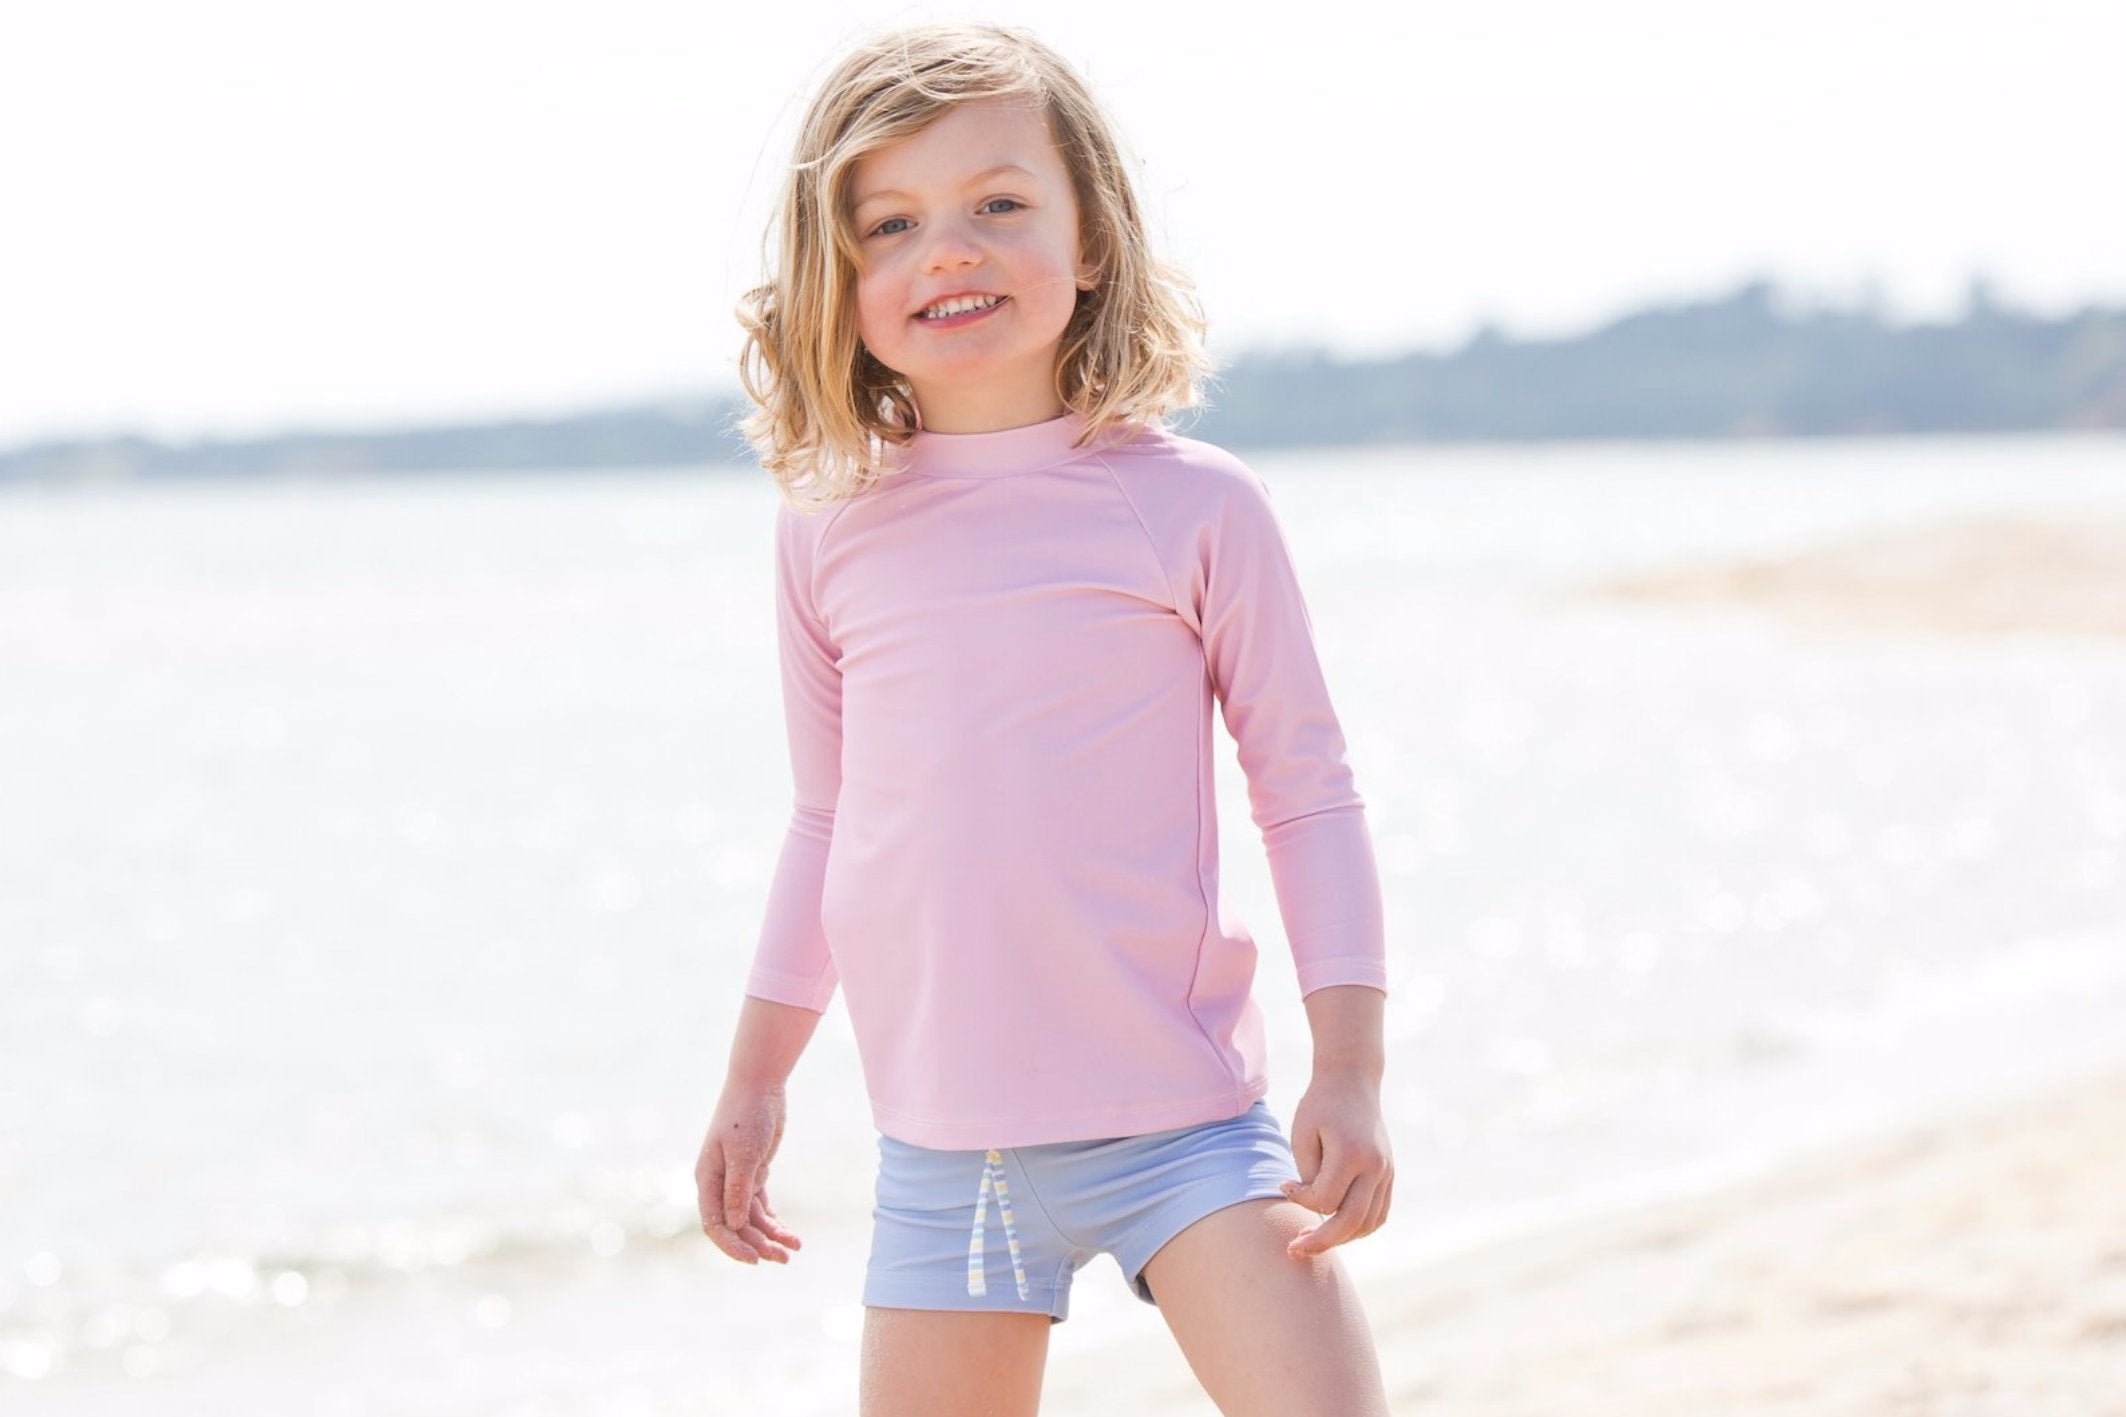 harry & pop original rashguard in palm cove pink | rashie | rashvest